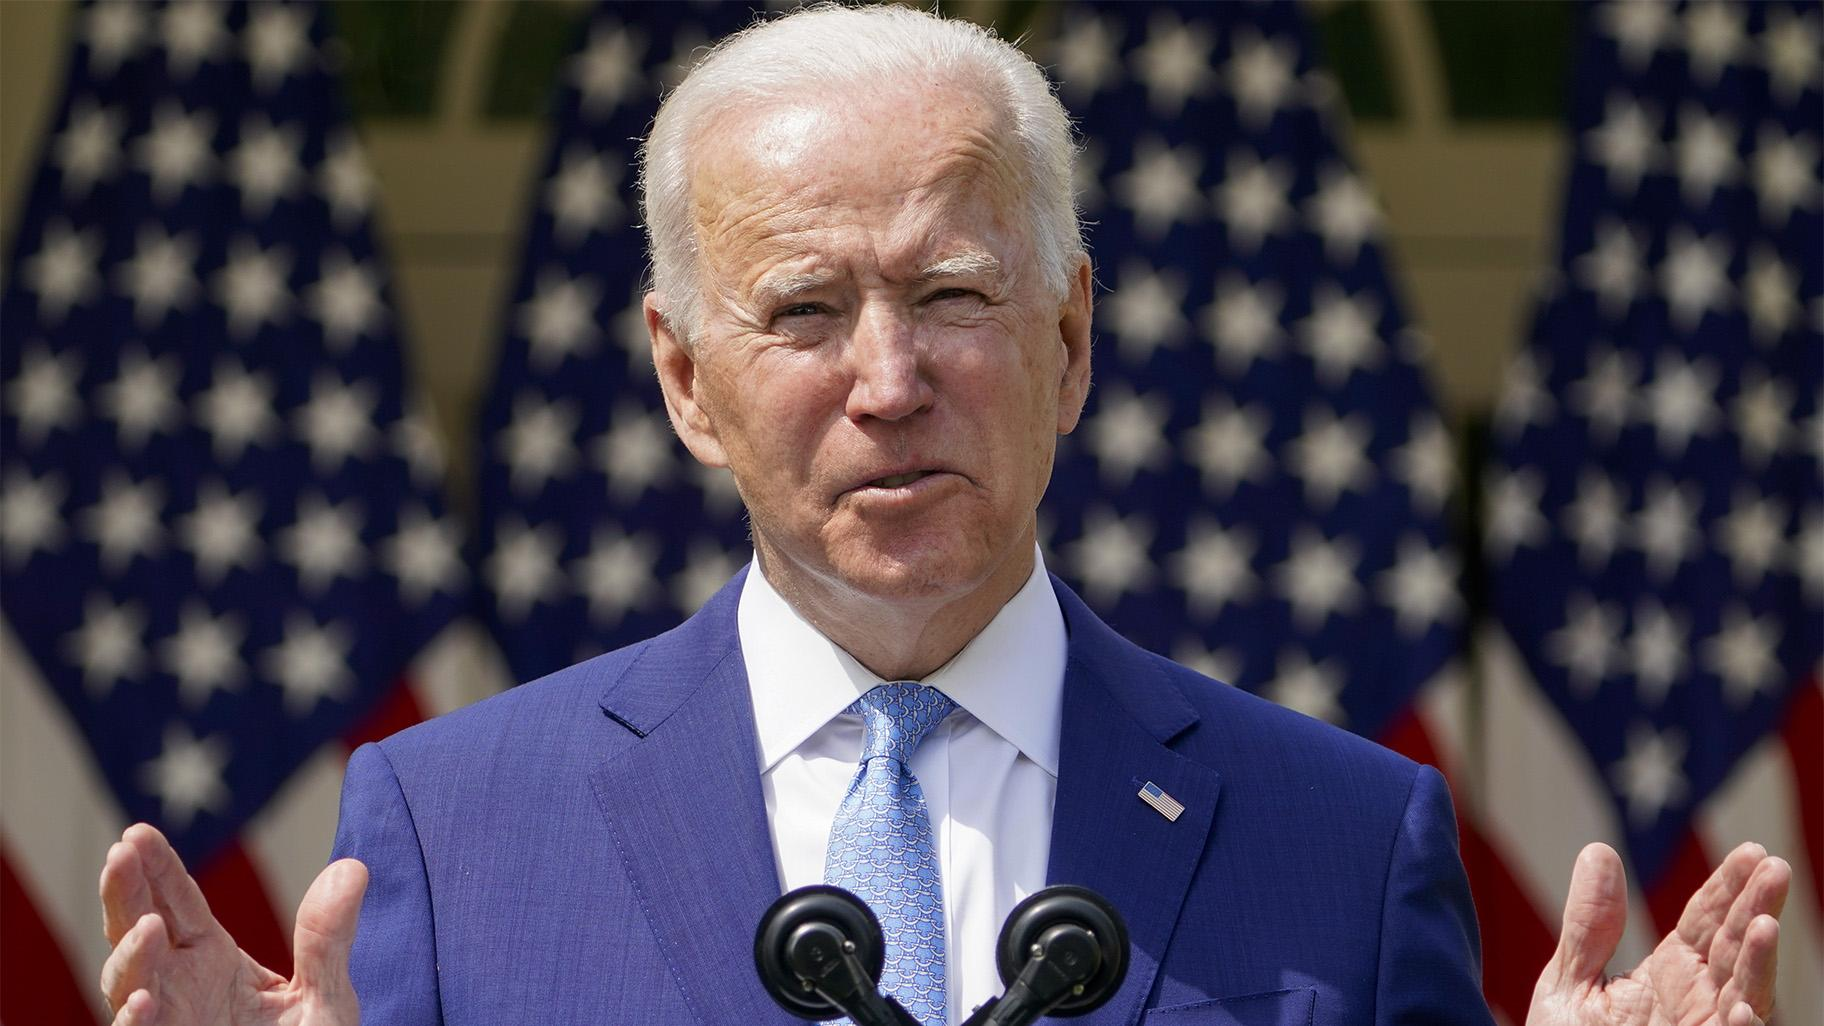 Biden released a wish list for the federal budget on Friday, asking for an 8.4% increase in agency operating budgets with substantial gains for Democratic priorities like education, health care, housing and environmental protection. (AP Photo / Andrew Harnik, File)